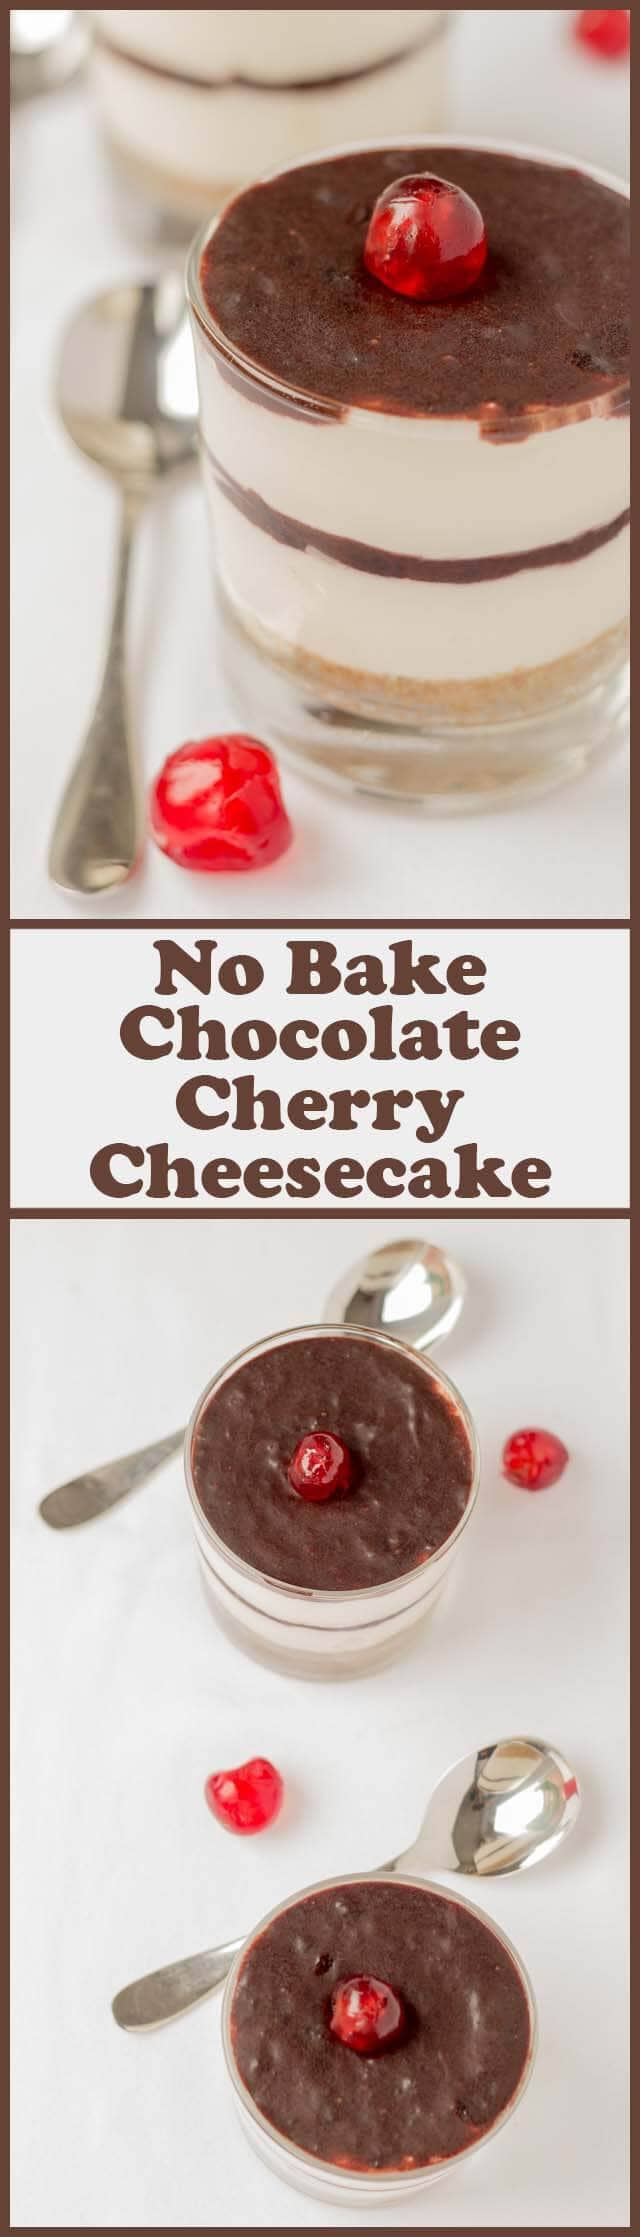 This no bake chocolate cherry cheesecake is a deliciously wicked and indulgent treat. Made in a glass for ease and with no need to turn on the oven, this time saving dessert is perfect for dinner parties allowing you to prepare this prior to serving your main course!